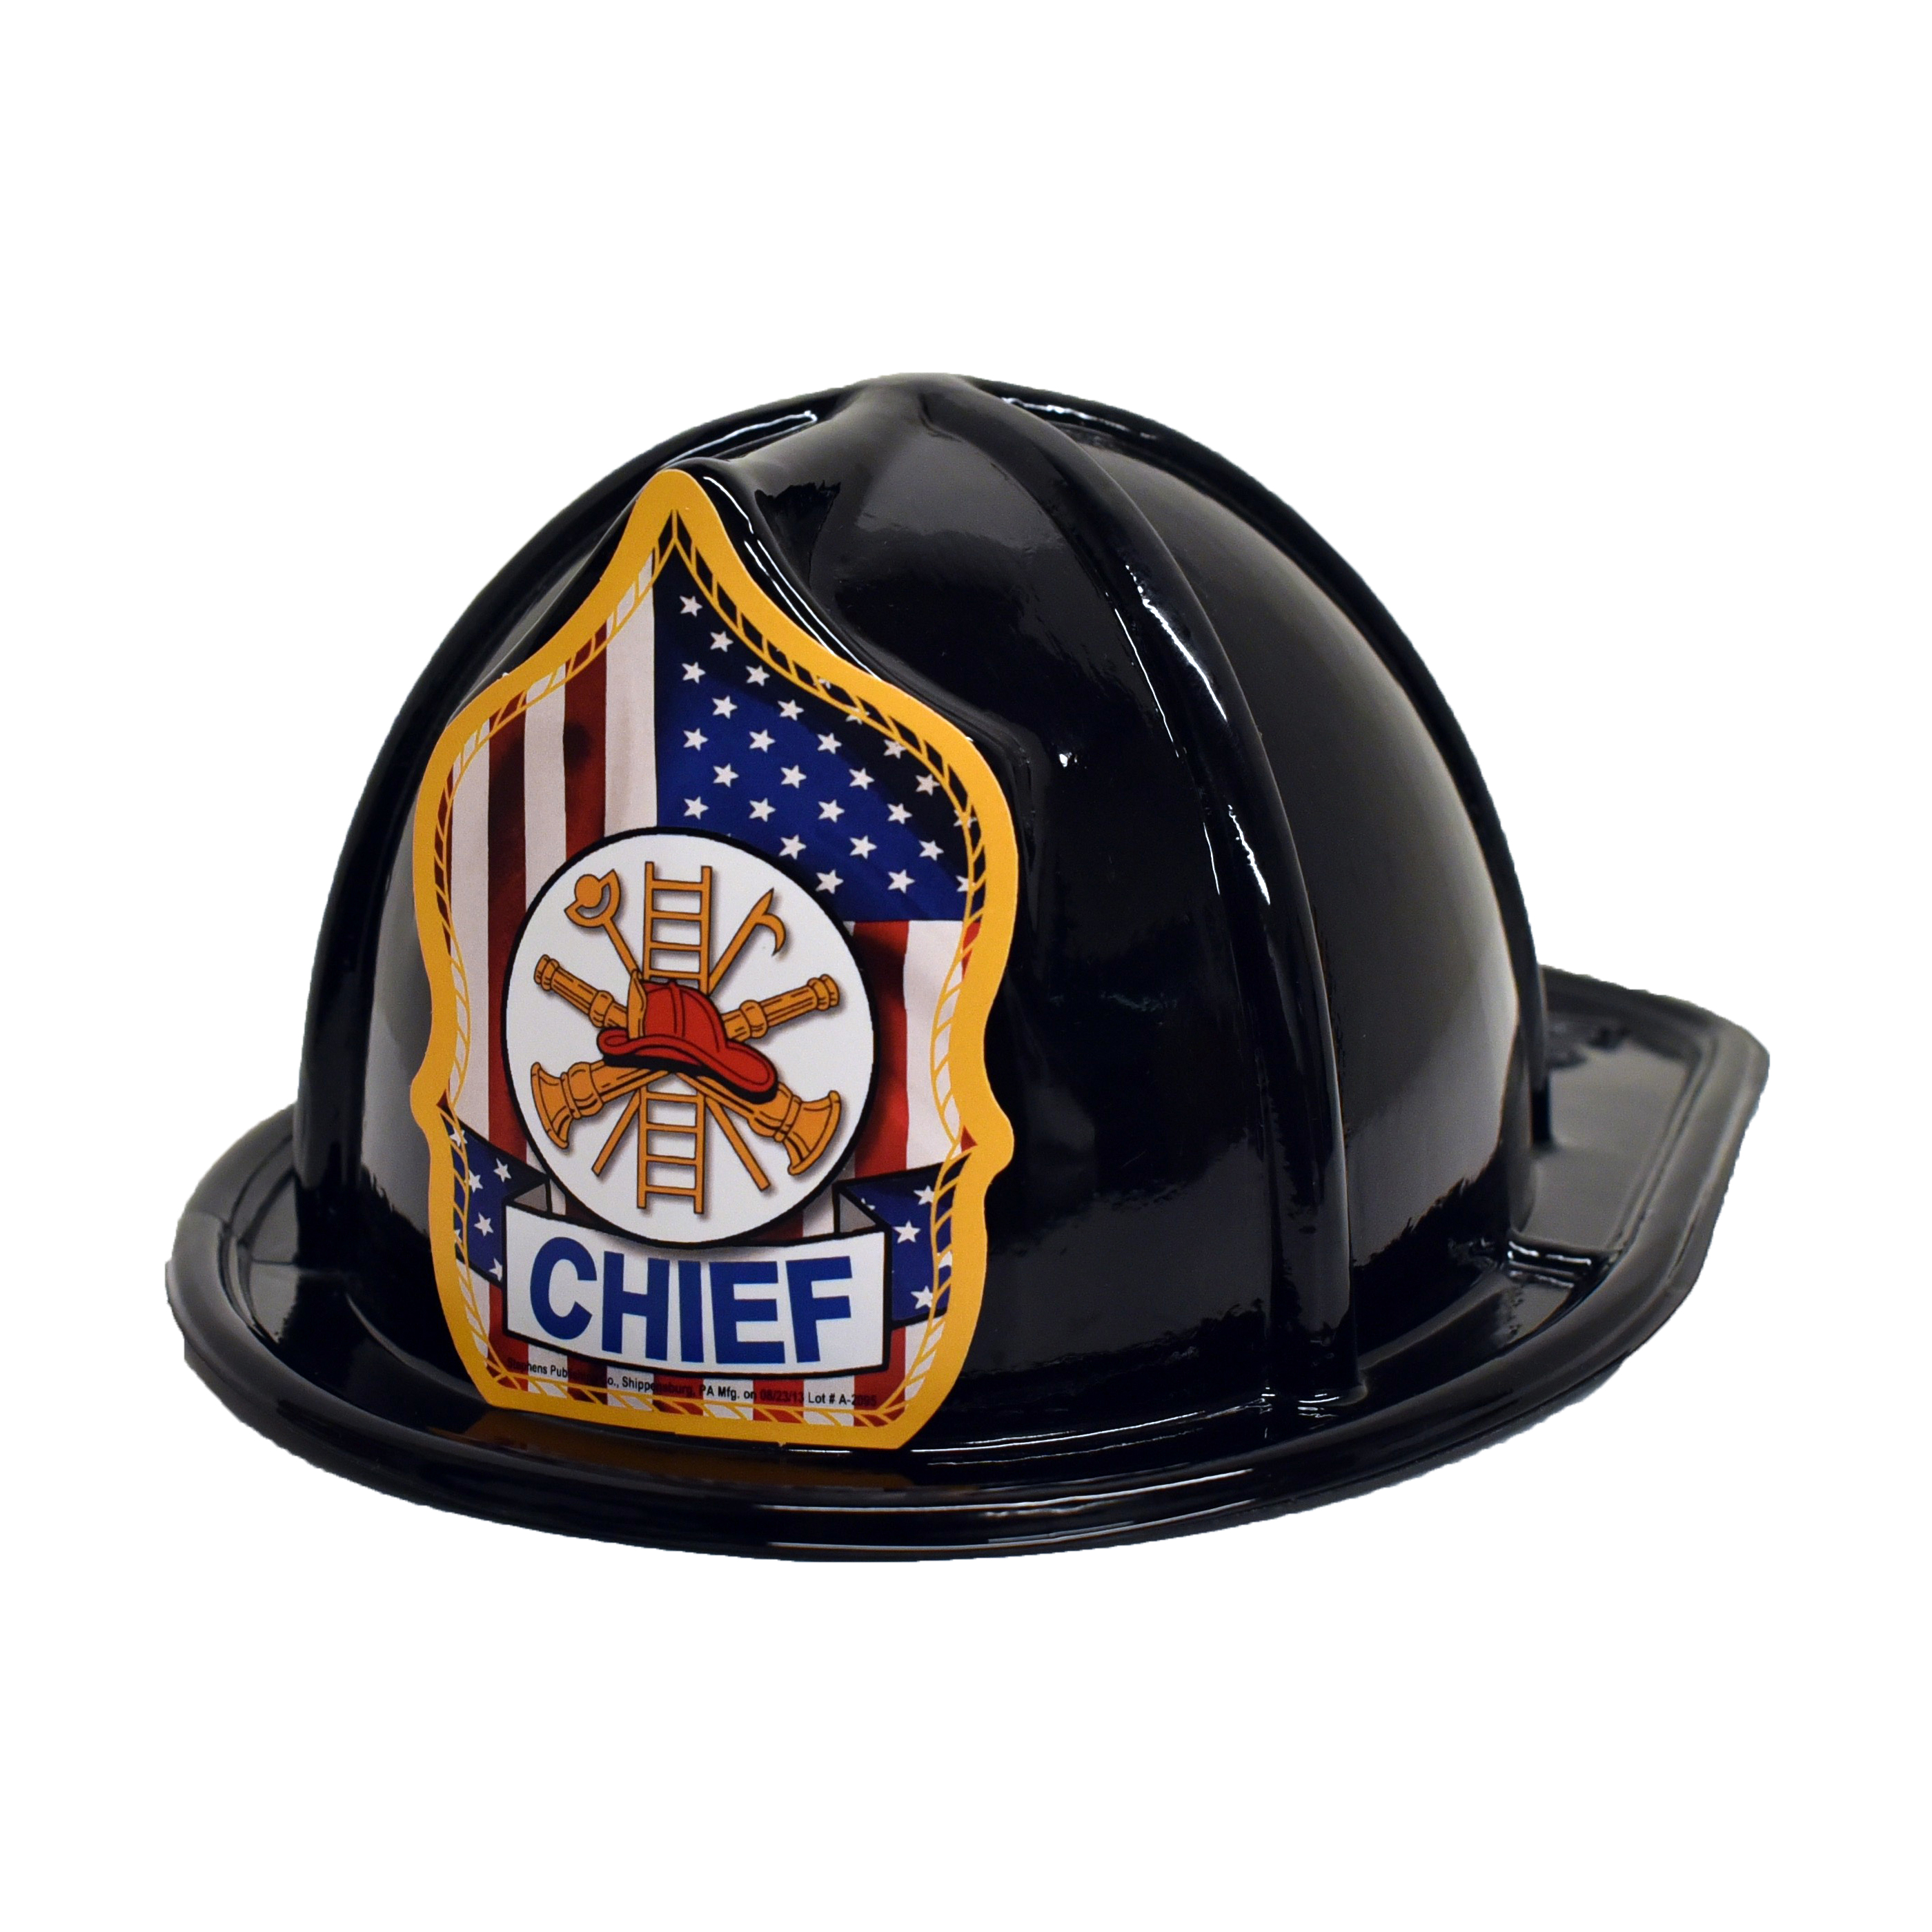 CLASSIC Fire Hats ON SALE (Stock